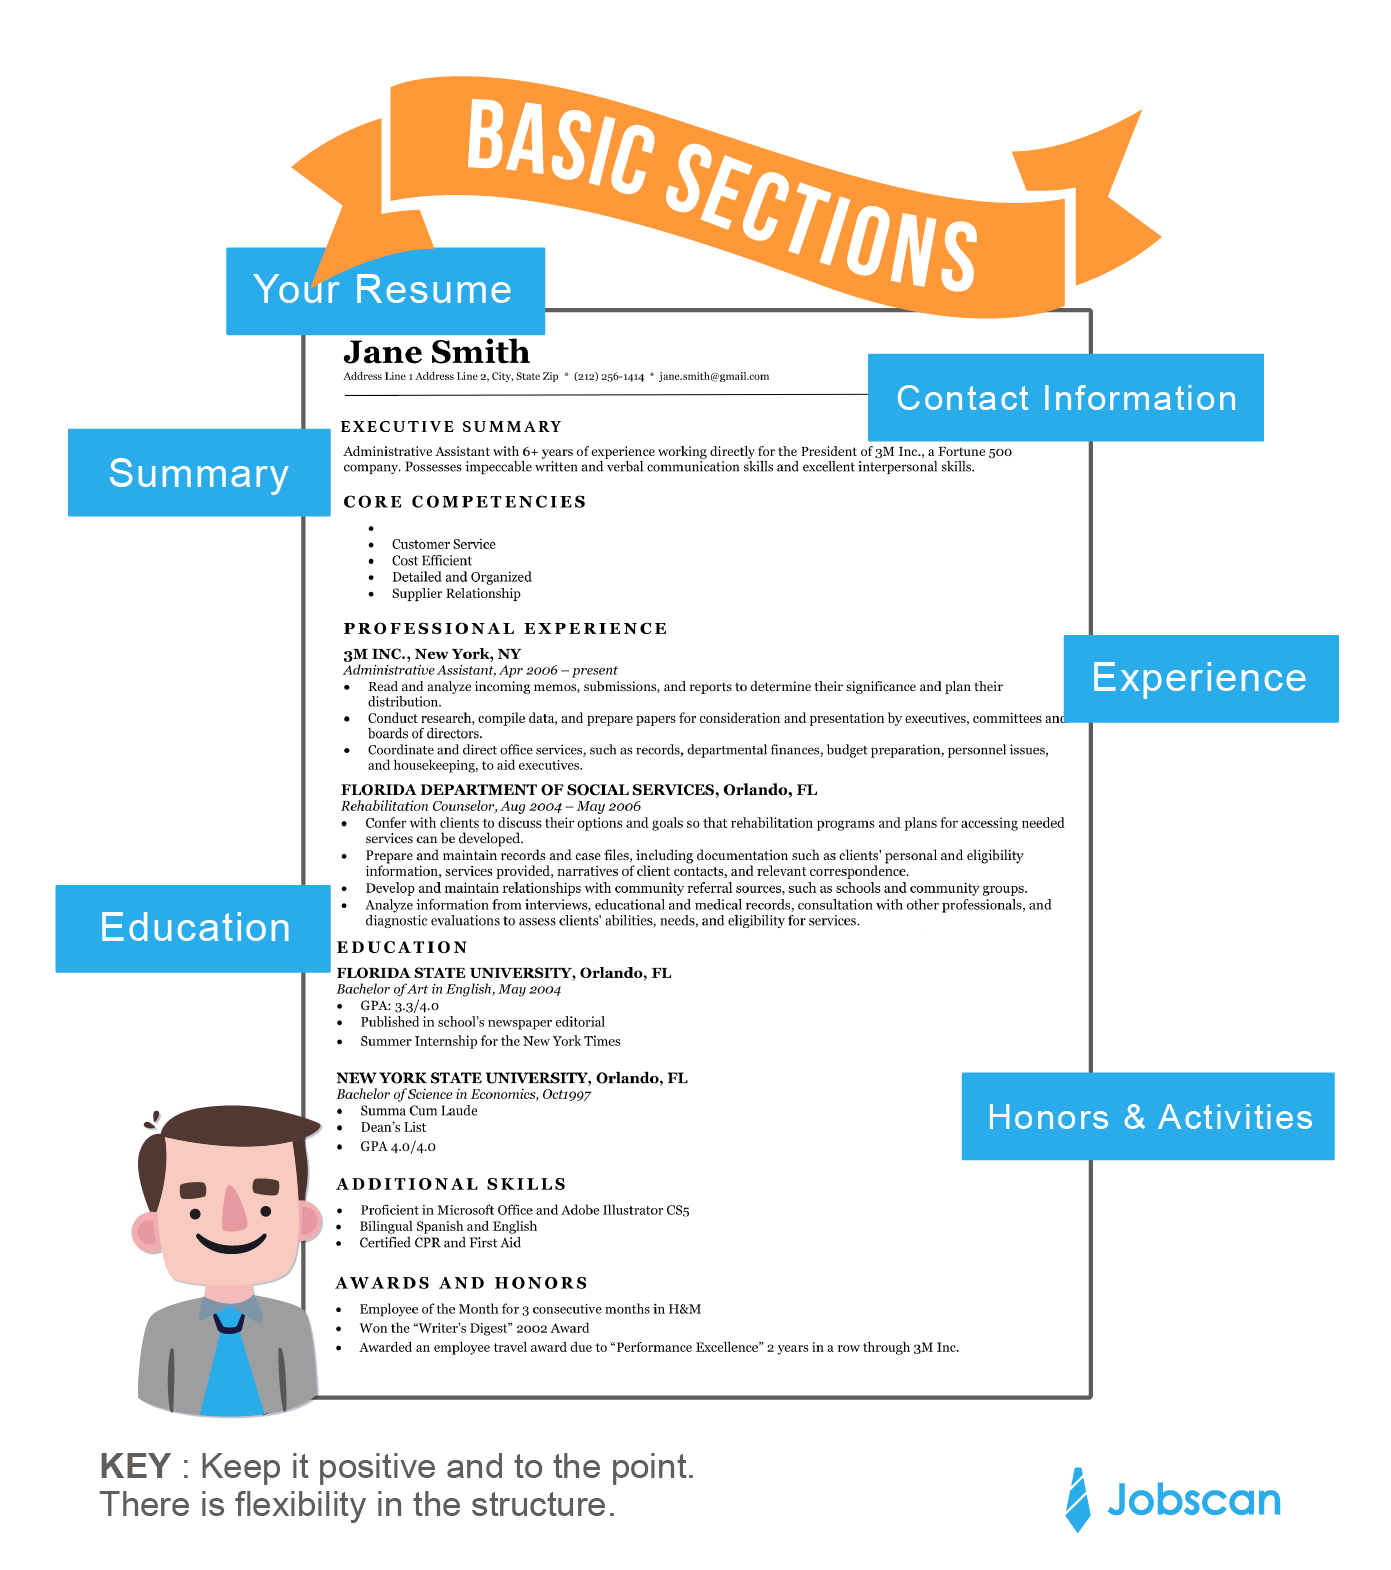 Resume Templates Guide - Jobscan